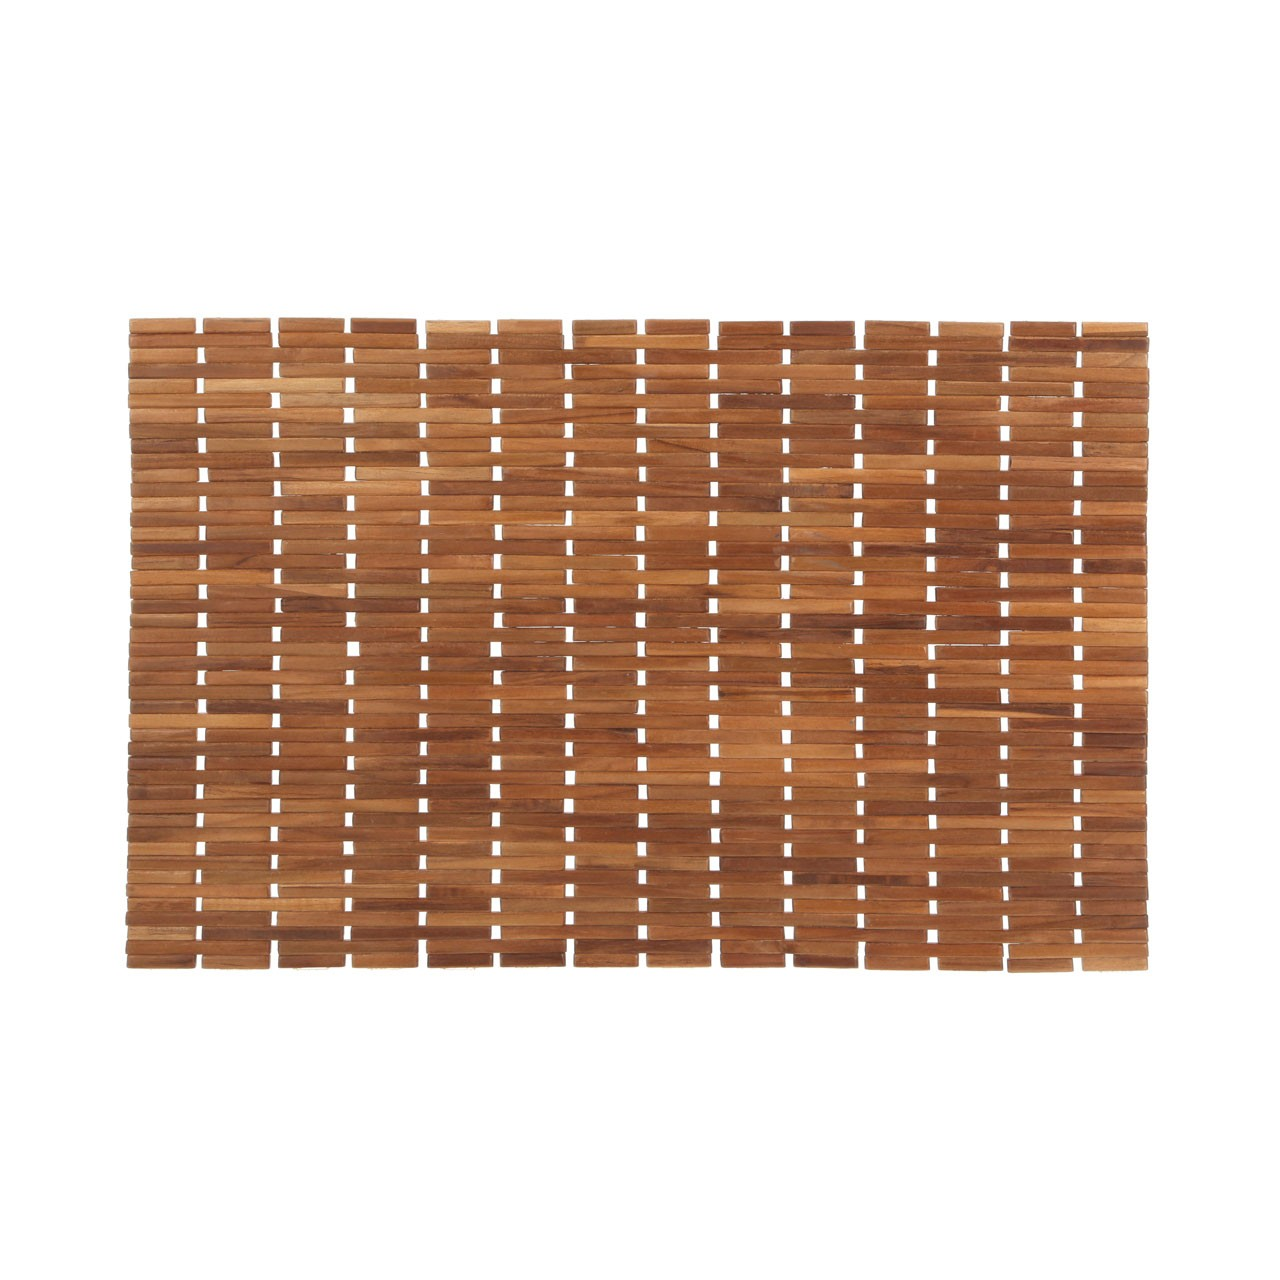 Prime Furnishing Acacia Wood Indoor Sticko Door Mat - Natural